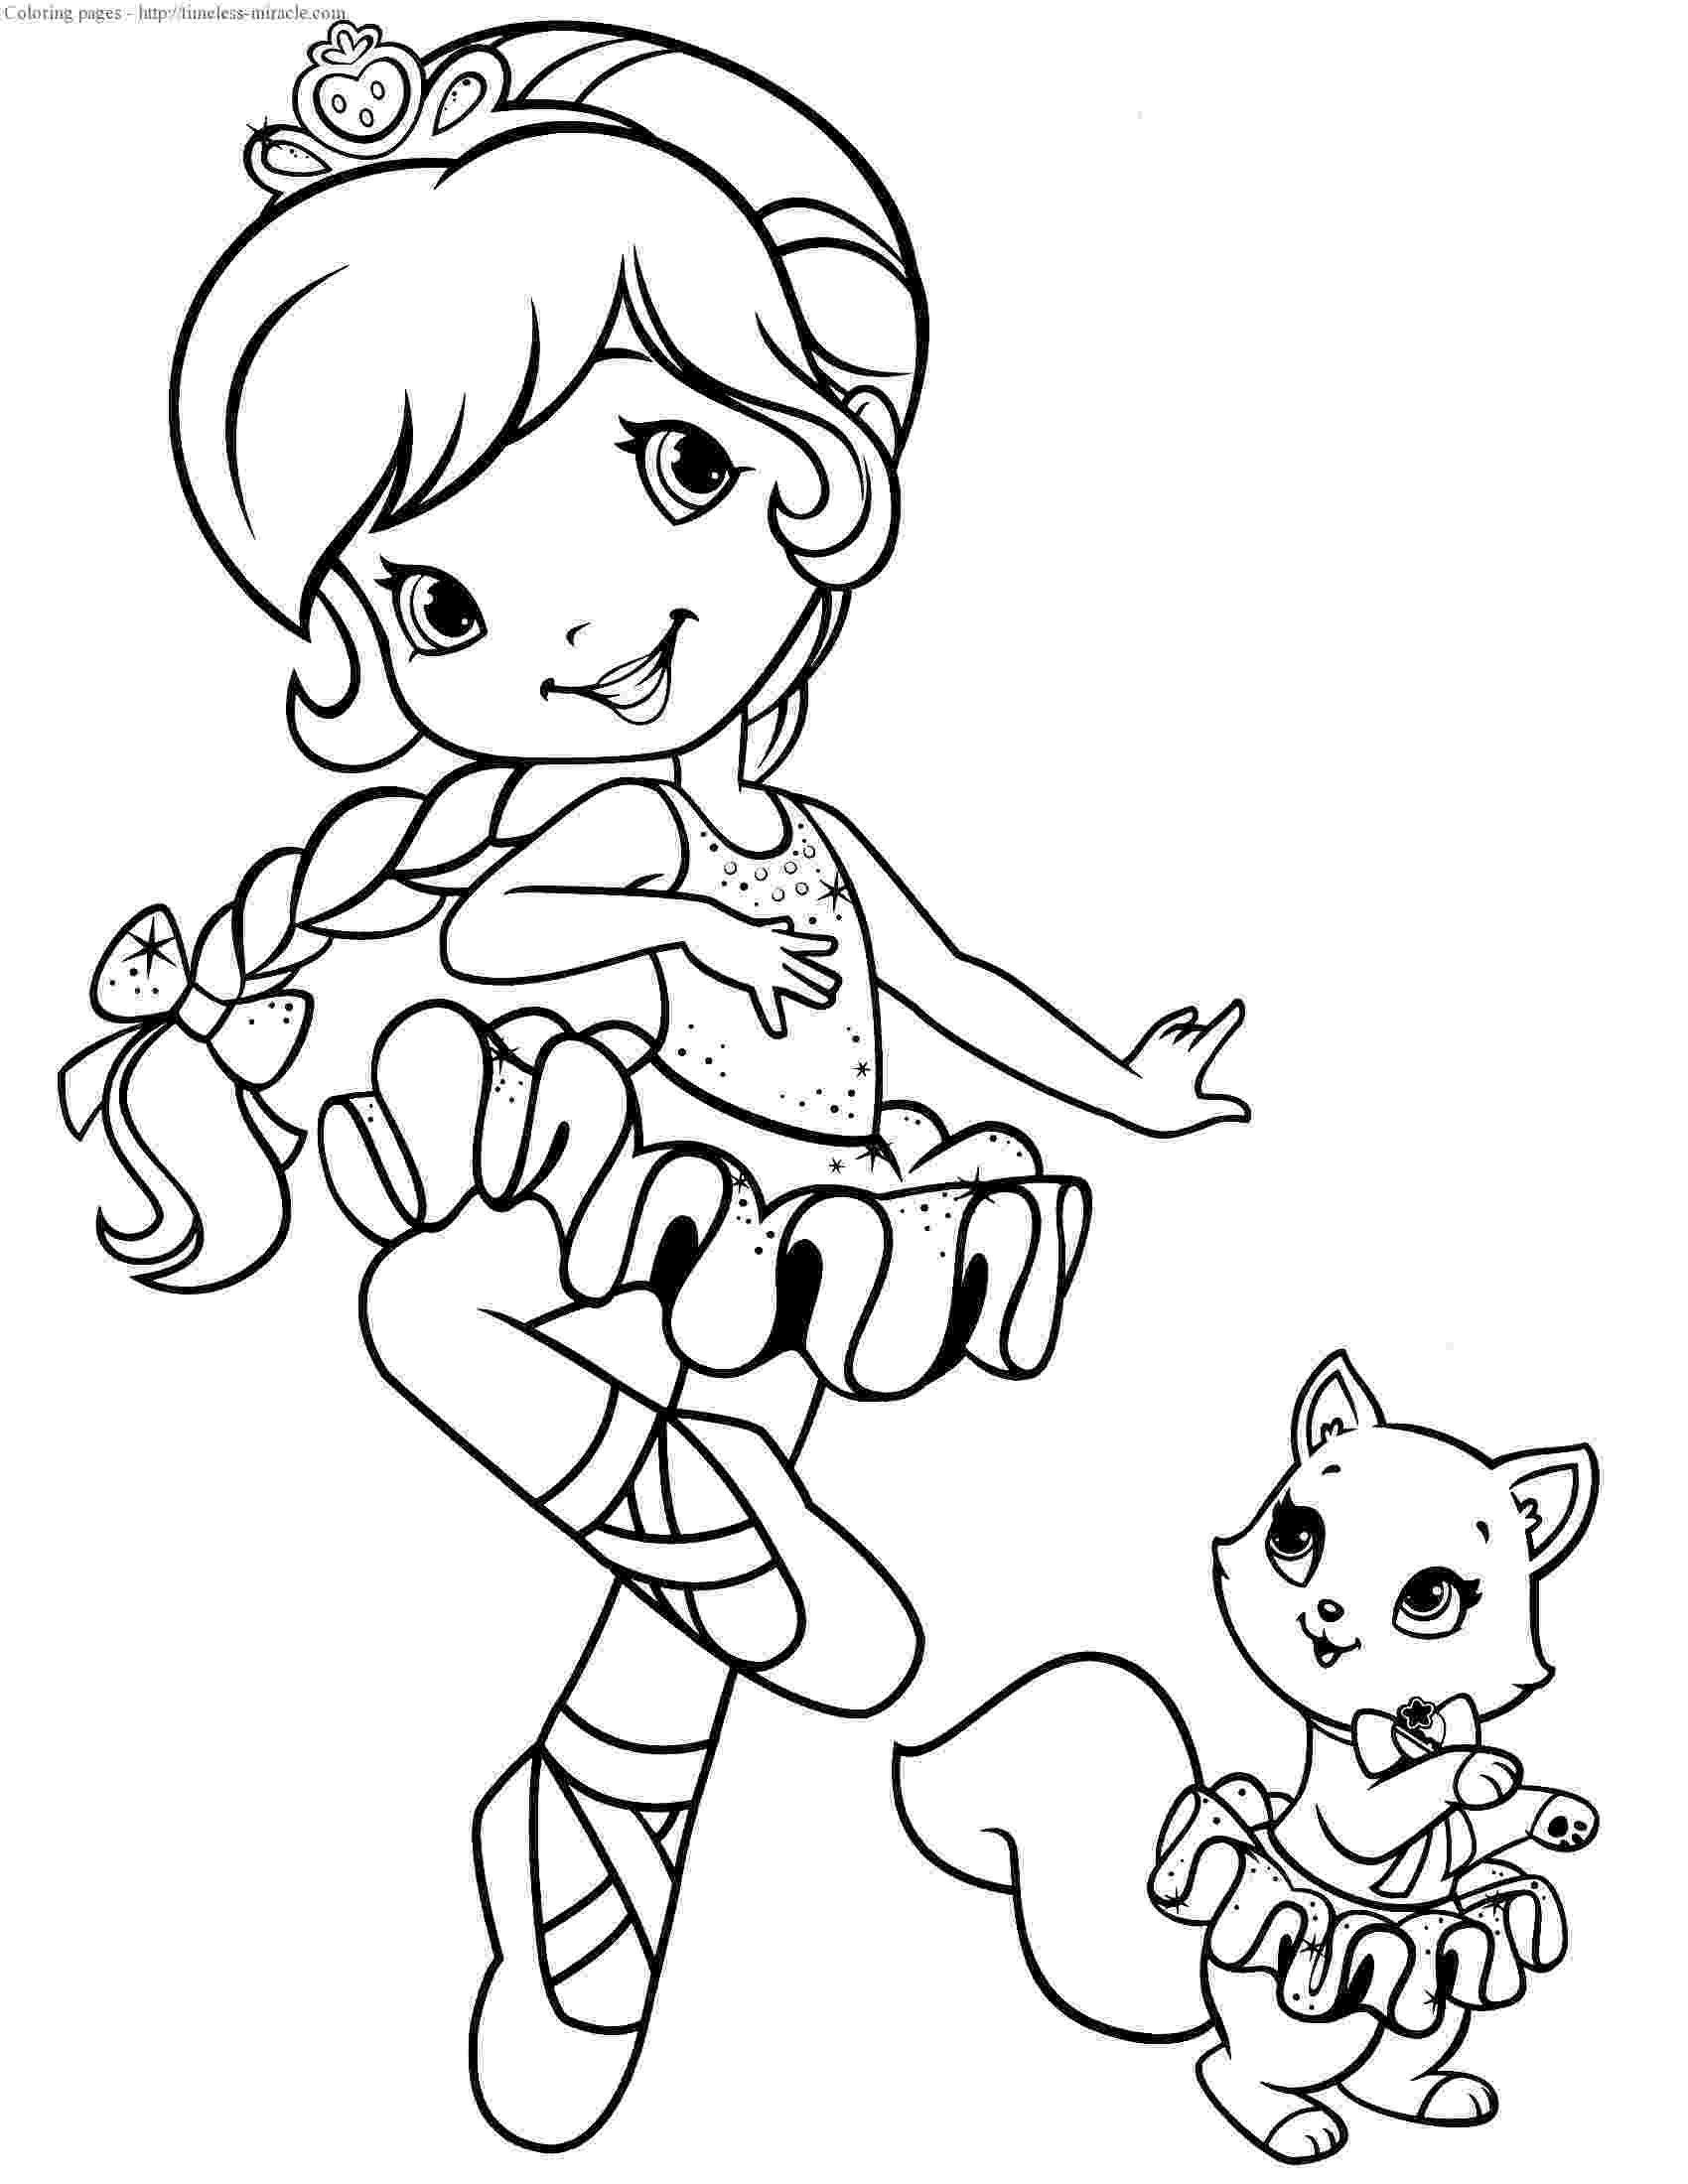 strawberry shortcake princess coloring pages top 20 free printable strawberry shortcake coloring pages coloring strawberry pages shortcake princess